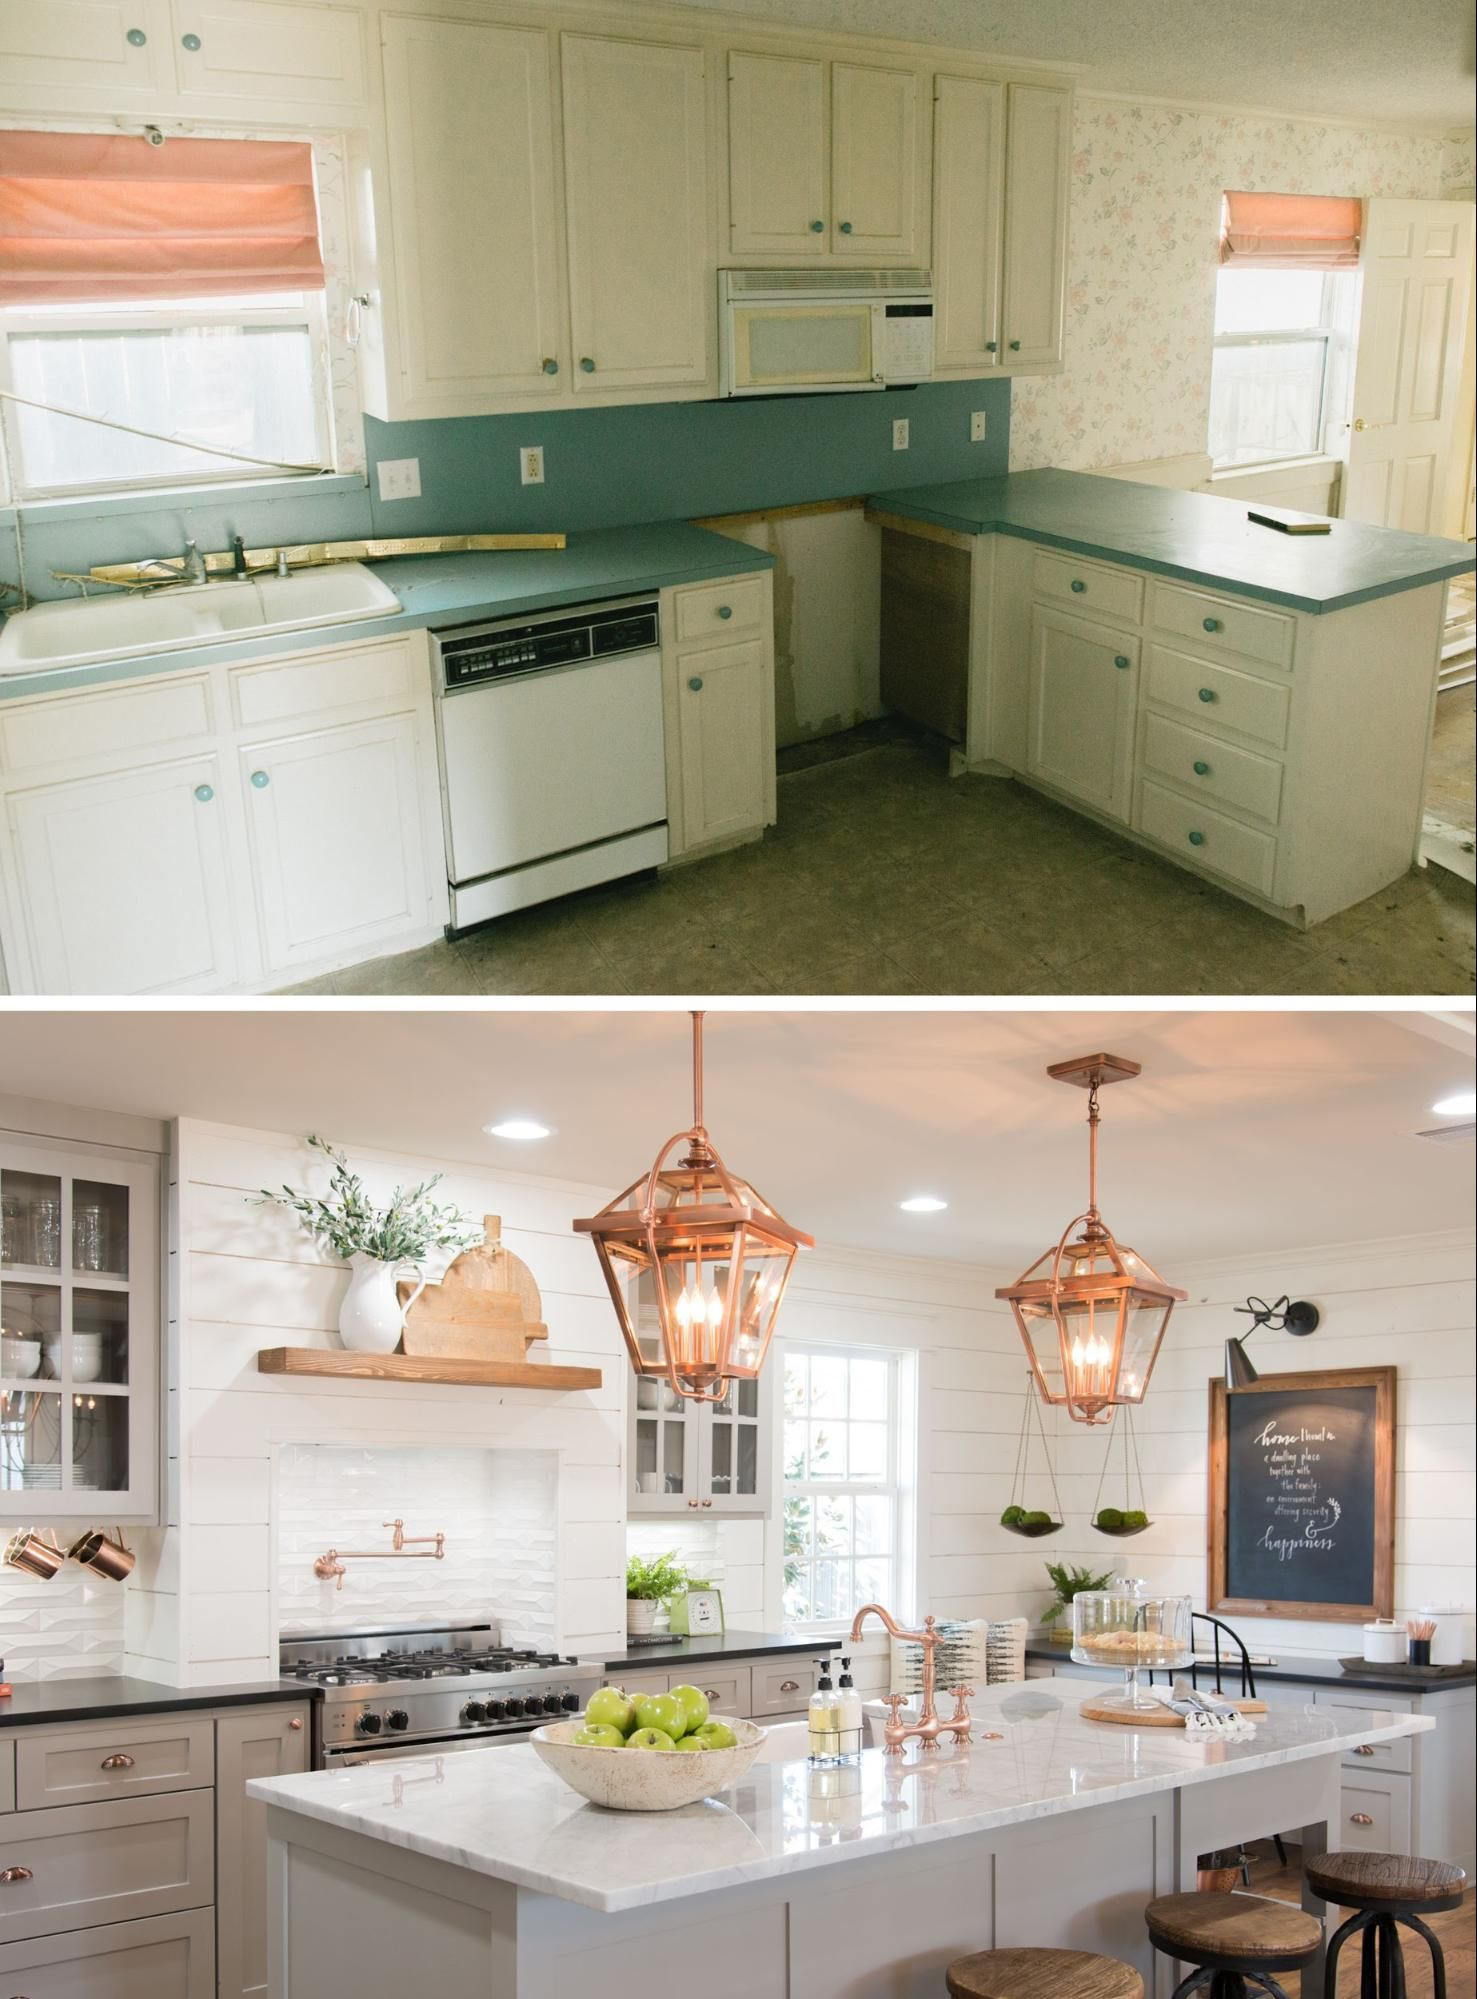 Fixer Upper Season 3 Episode 17 The Carriage House Small Kitchen Renovations Kitchen Remodel Small Home Kitchens